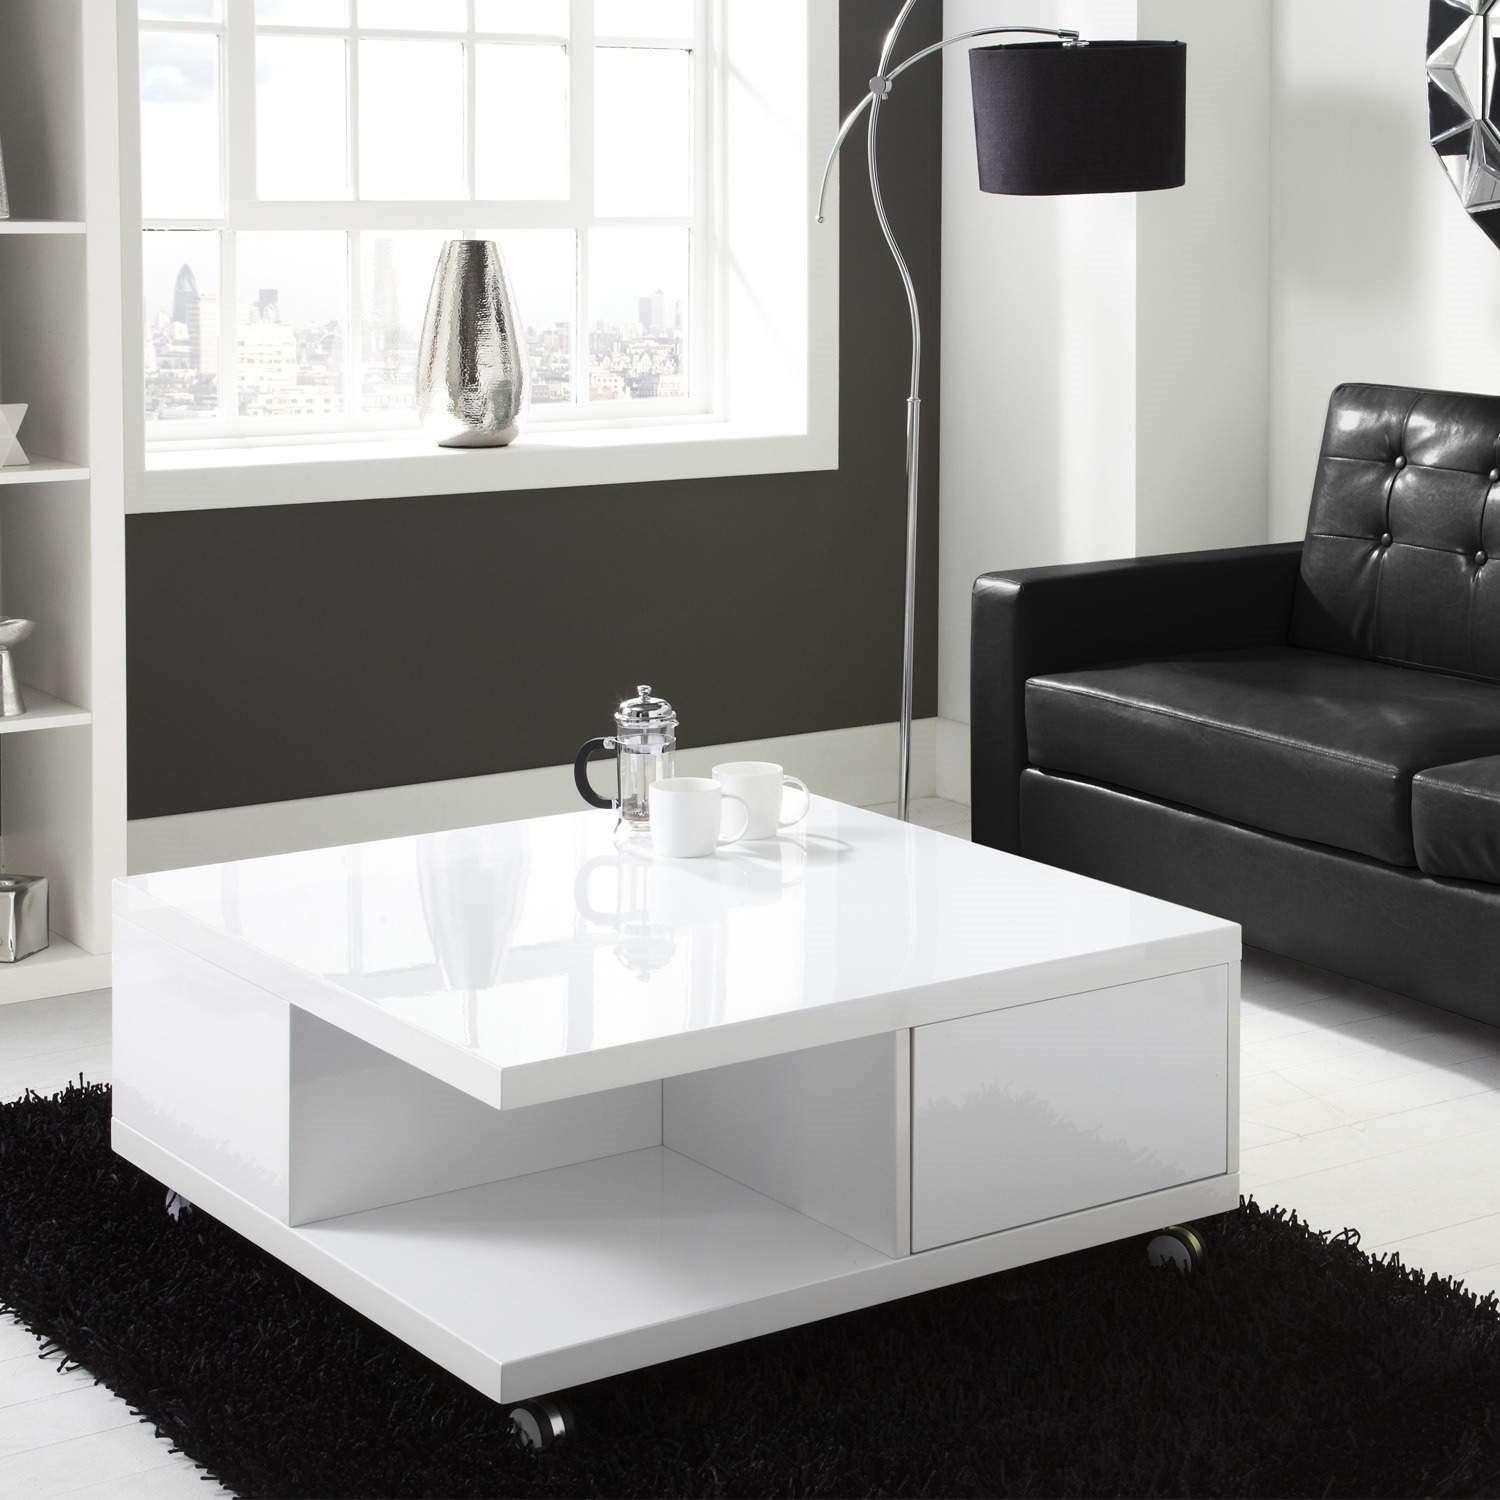 Tiffany High Gloss White Storage Coffee Table Range Amazon.co.uk Kitchen u0026 Home & Tiffany High Gloss White Storage Coffee Table Range: Amazon.co.uk ...